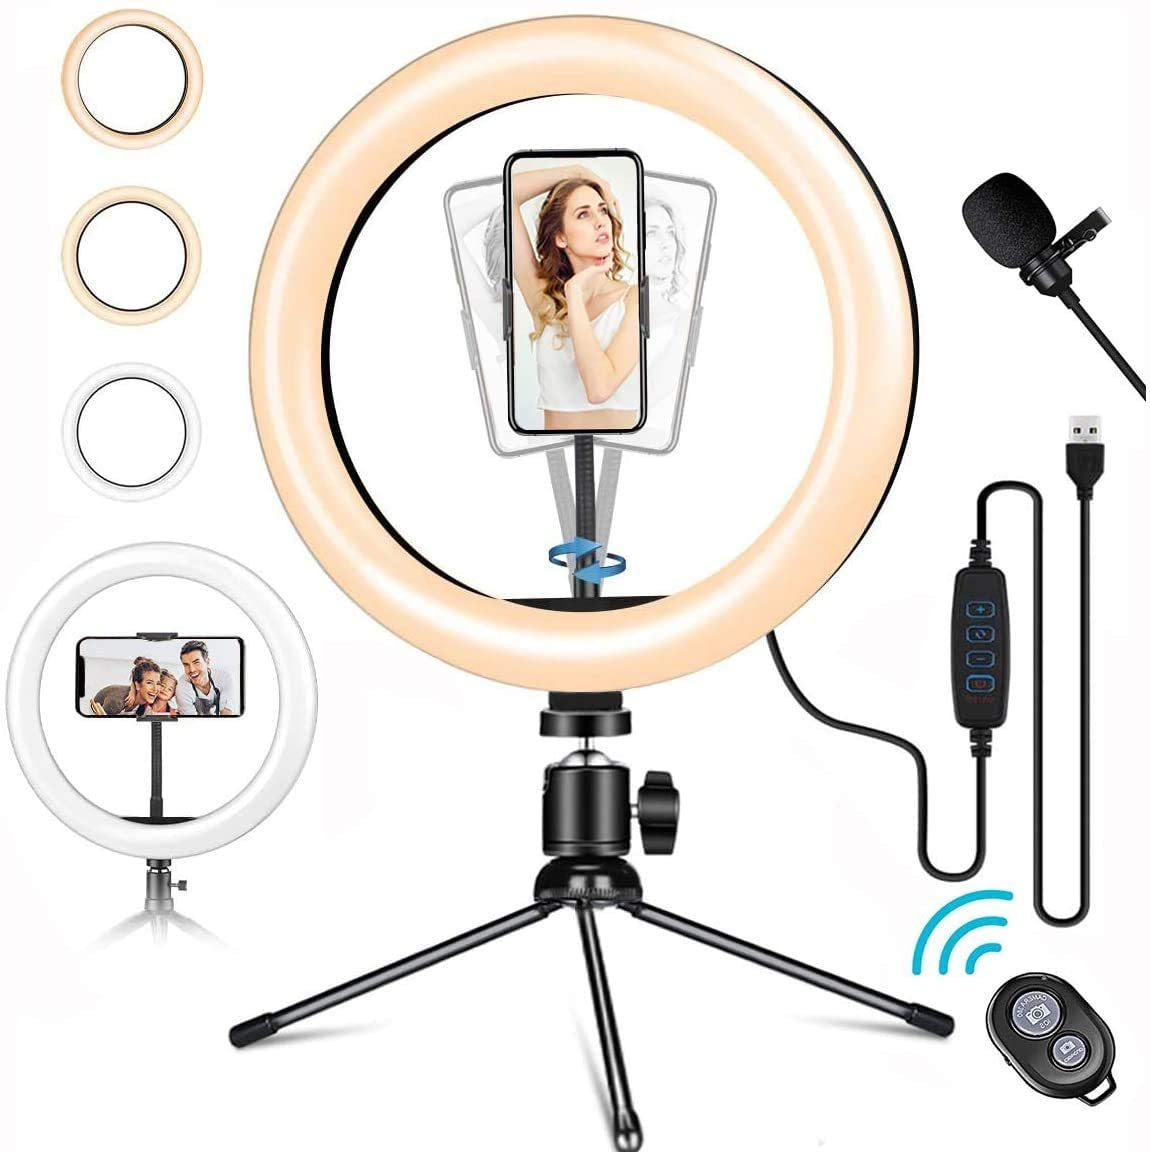 LED Ring Light with Mic, 10'' 10 Brightness Dimmable Ringlight with White/Soft/Warm 3 Light Modes for Makeup Selfie YouTube TikTok Live Streaming Record Videos (Metal)